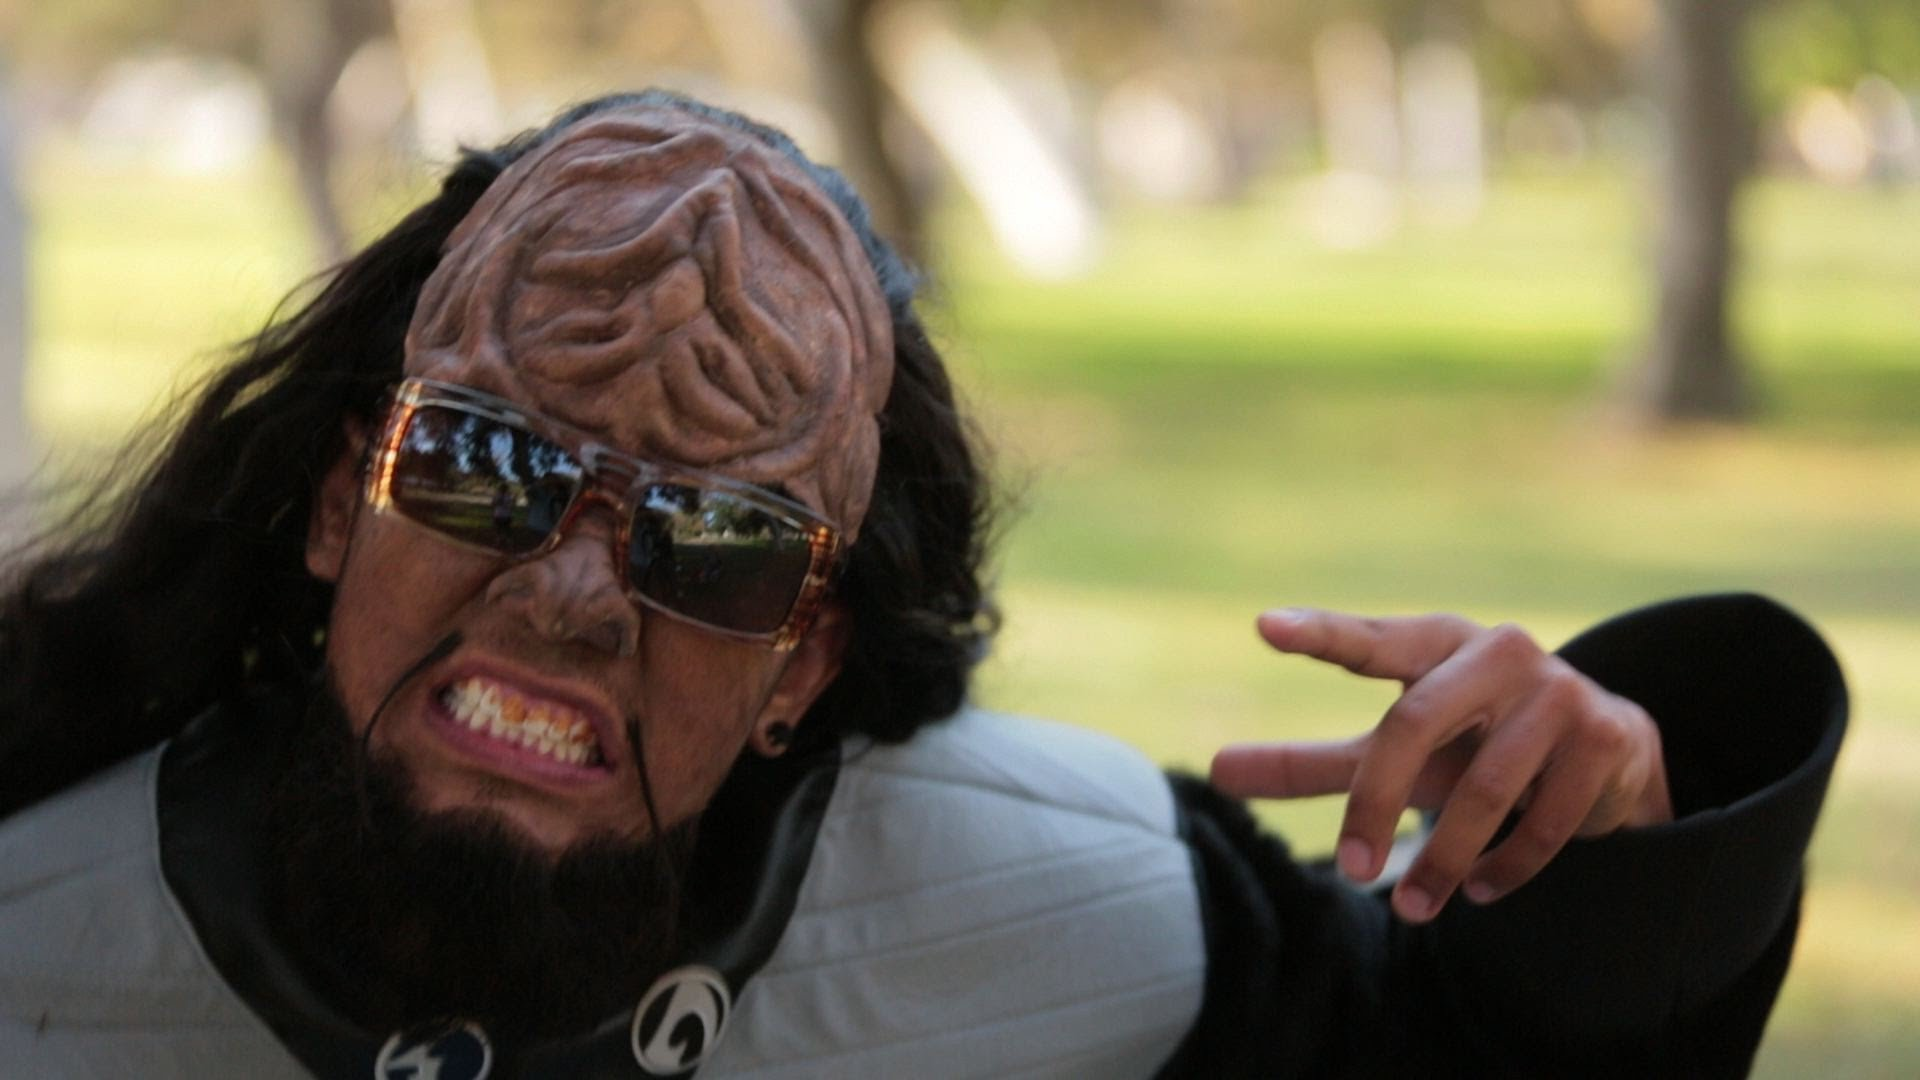 Welsh Government Releases Statement in Klingon on UFO Sightings